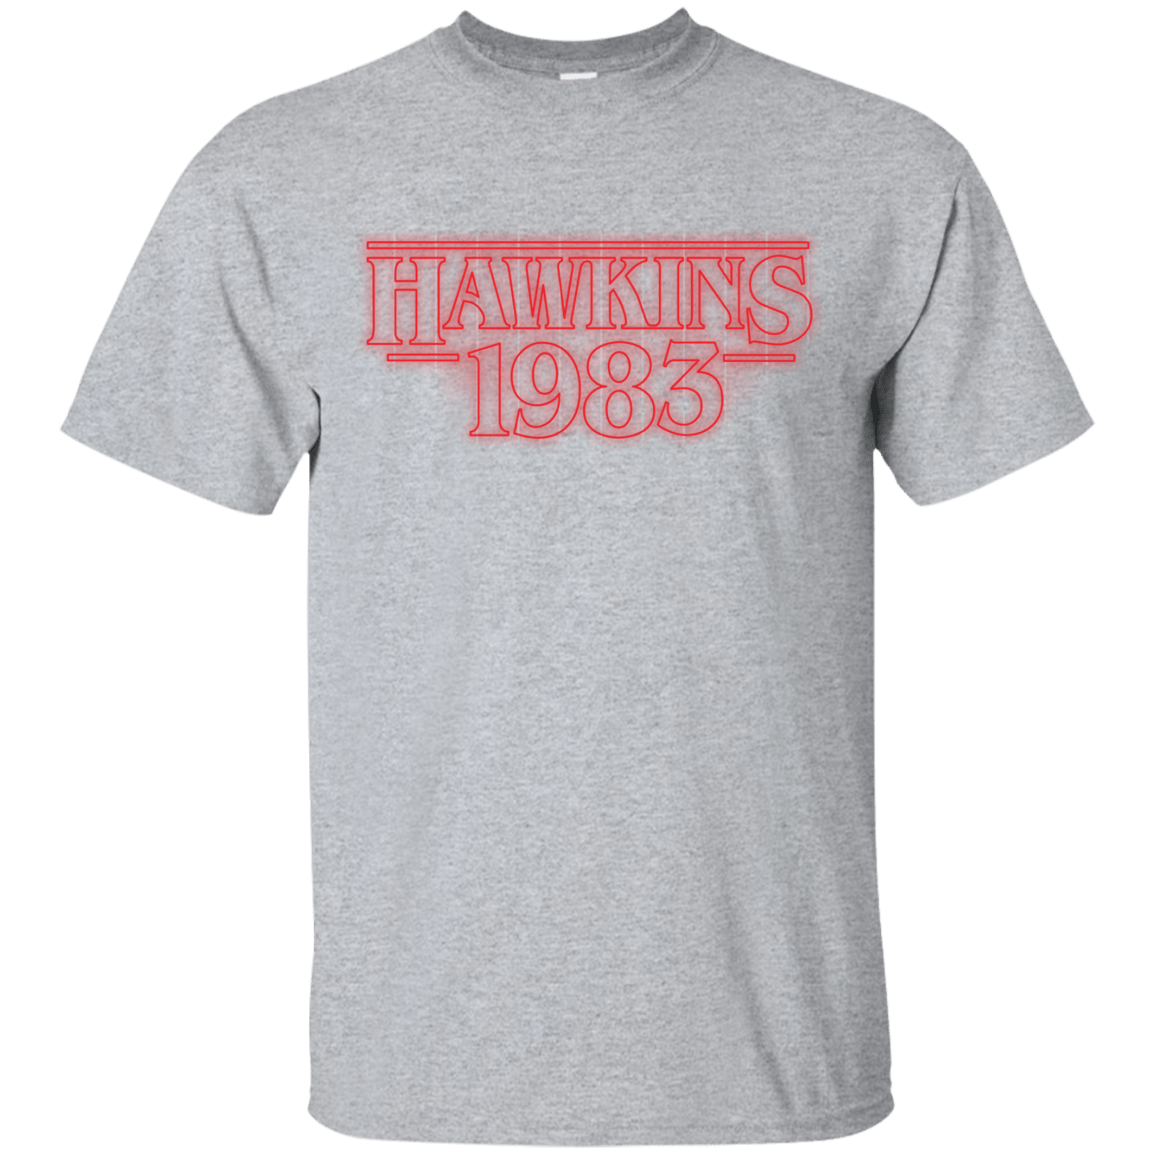 T-Shirts Sport Grey / Small Hawkins 83 T-Shirt